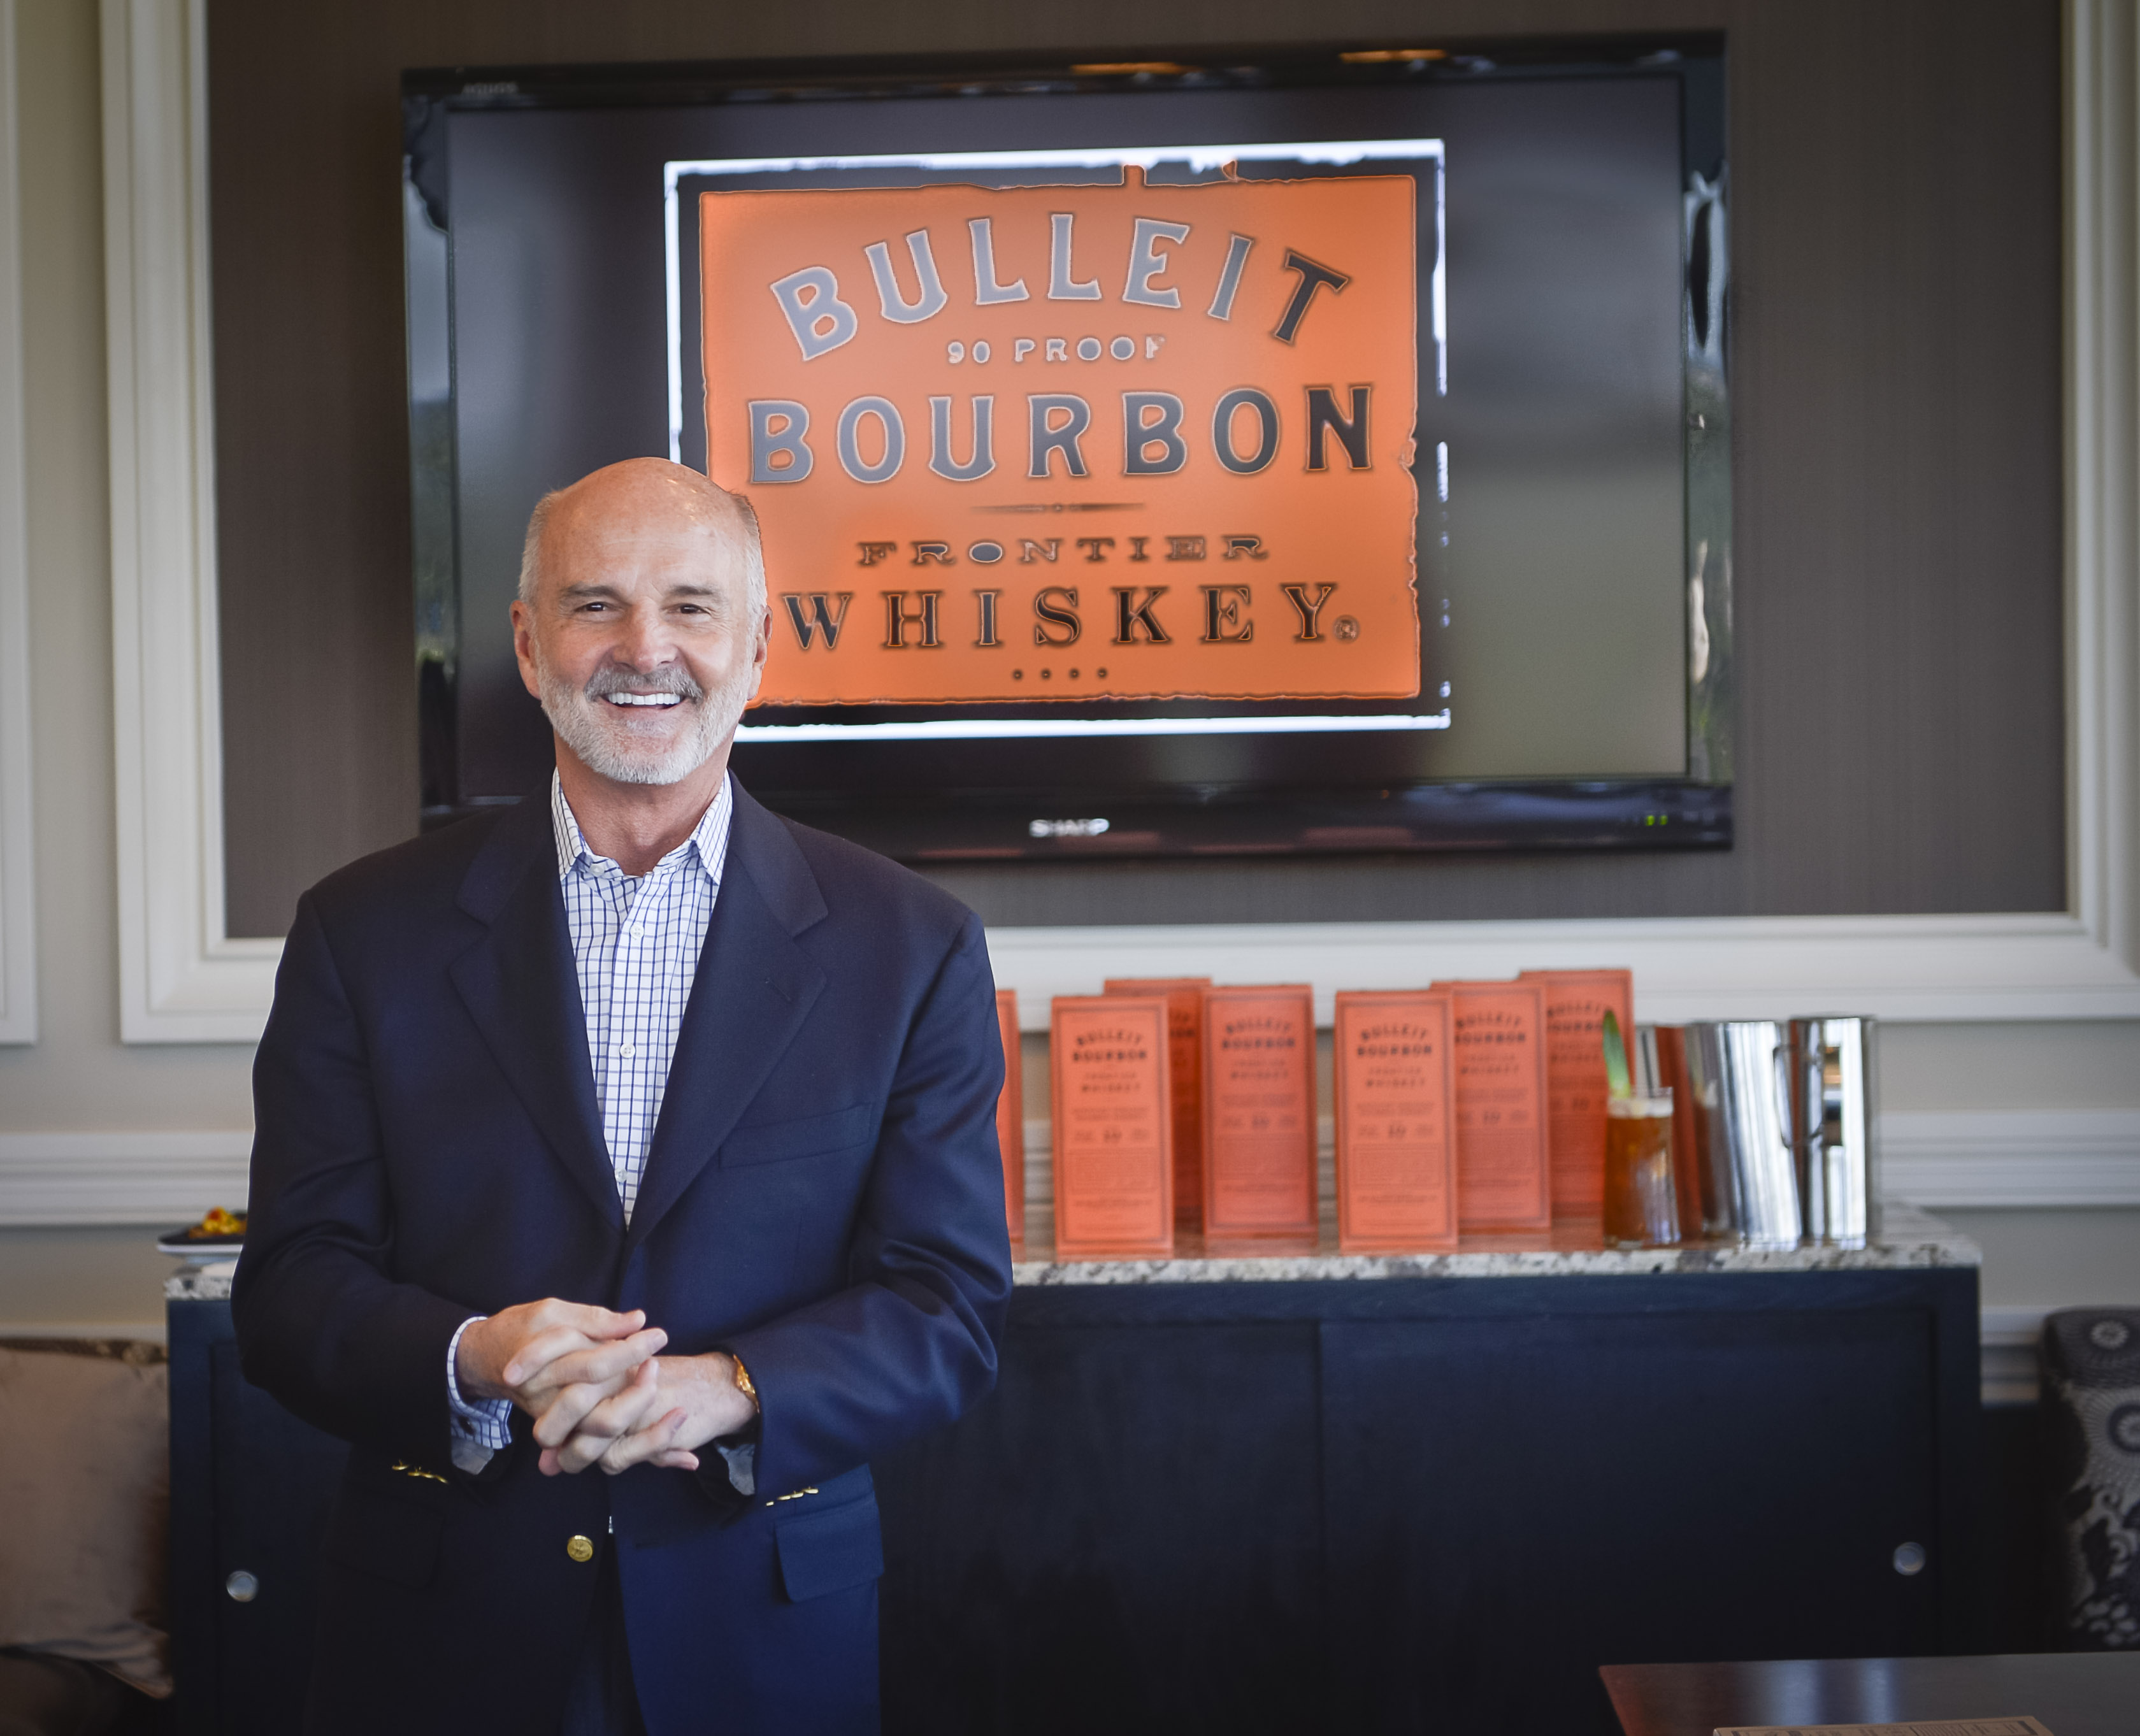 Tom Bulliet, the great-great grandson Augustus Bulliet the creator of Bulliet bourbon, March 5, 2013. Photo by Roberto Gonzalez/Orlando Magazine